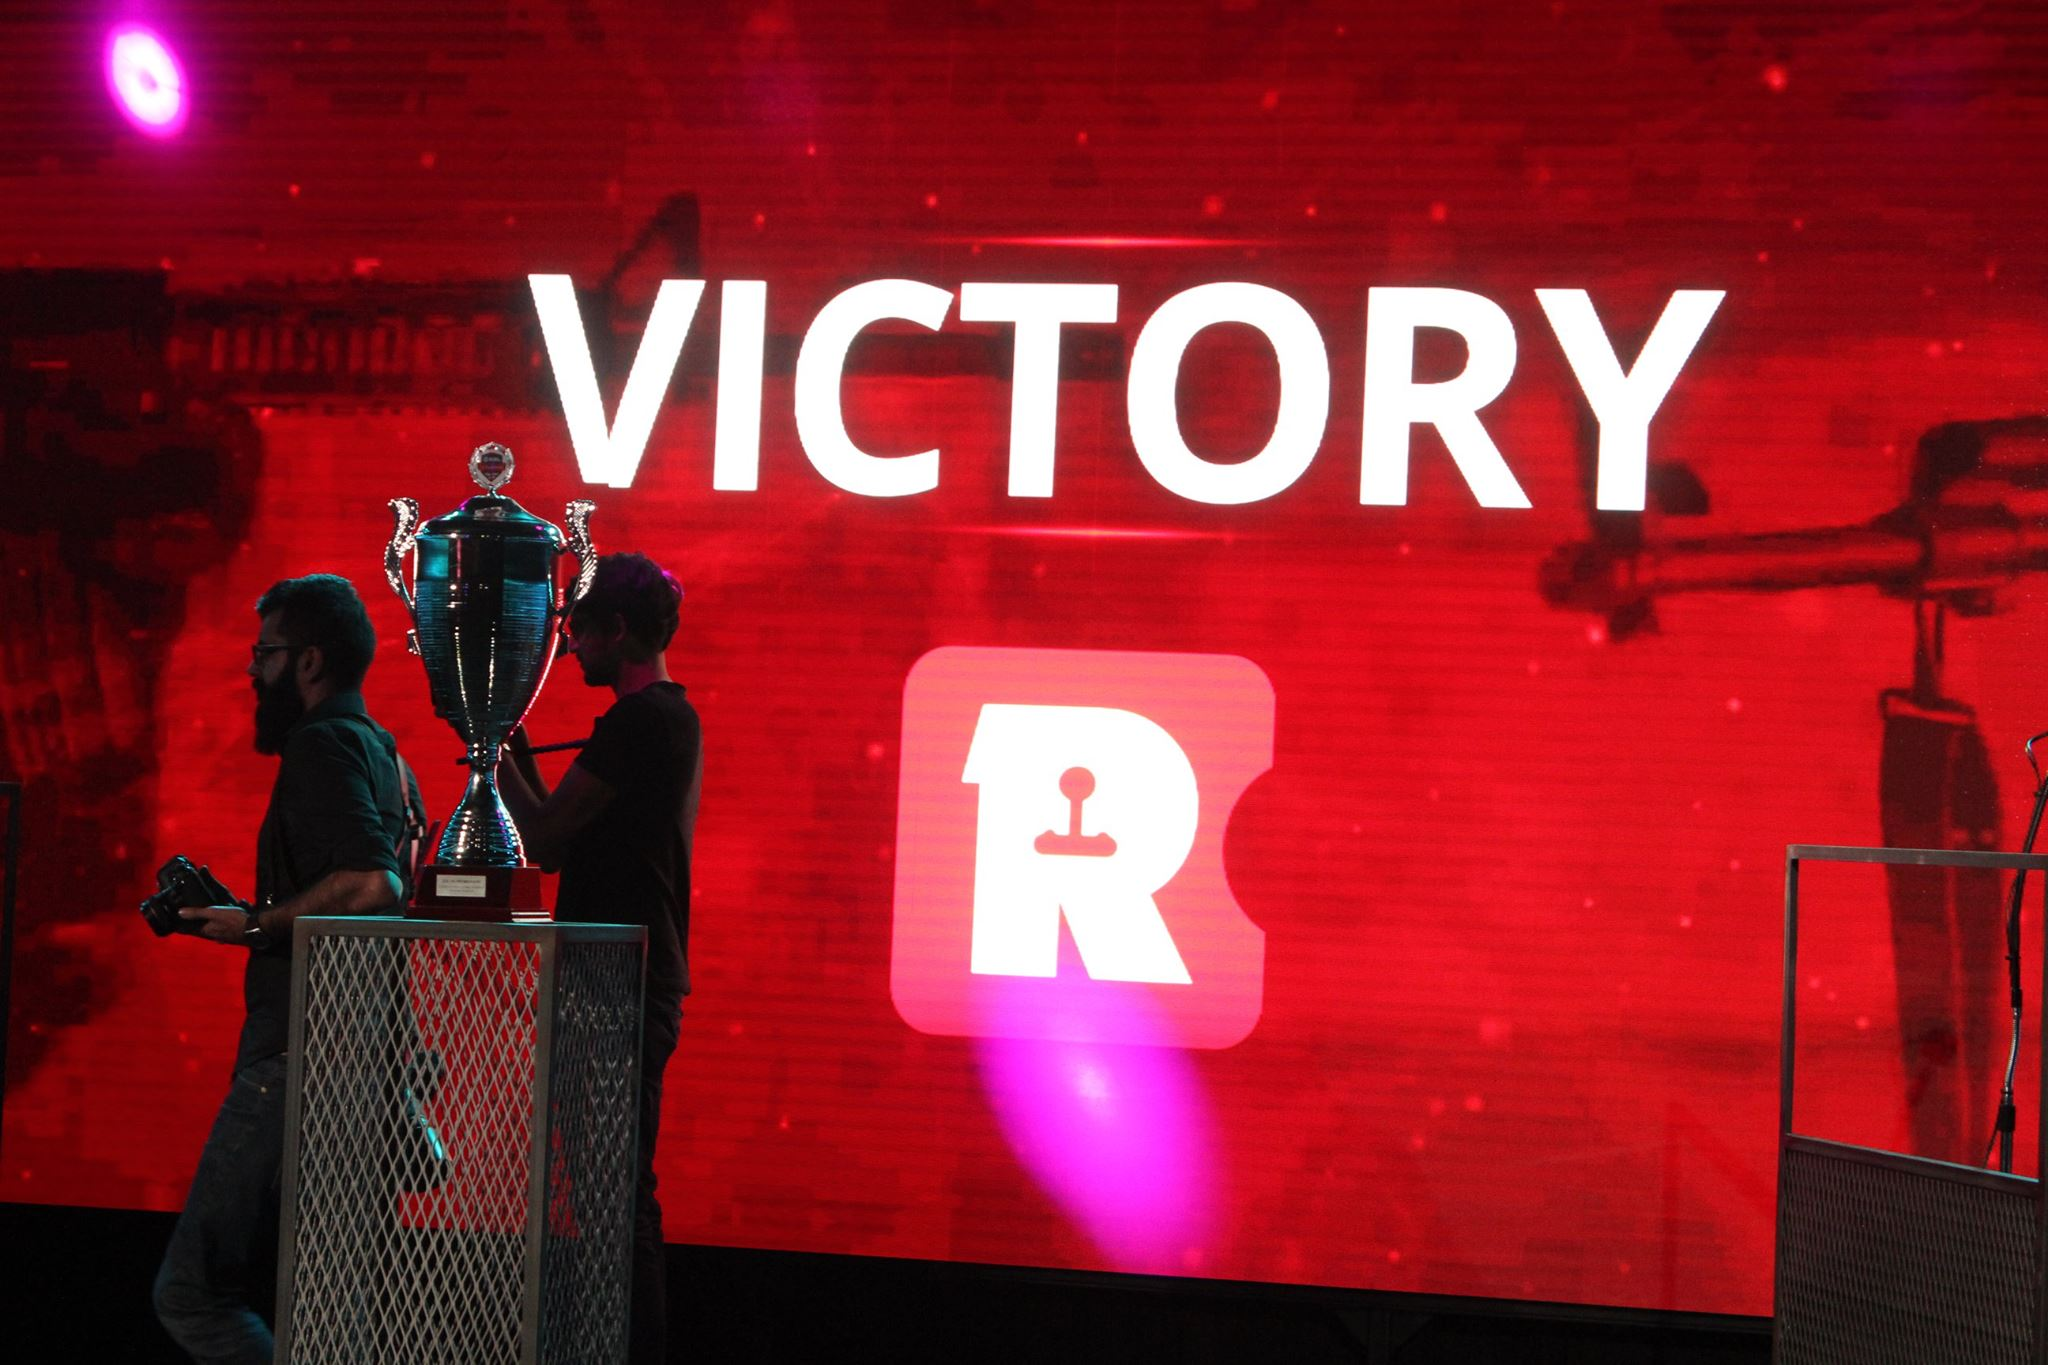 R victory